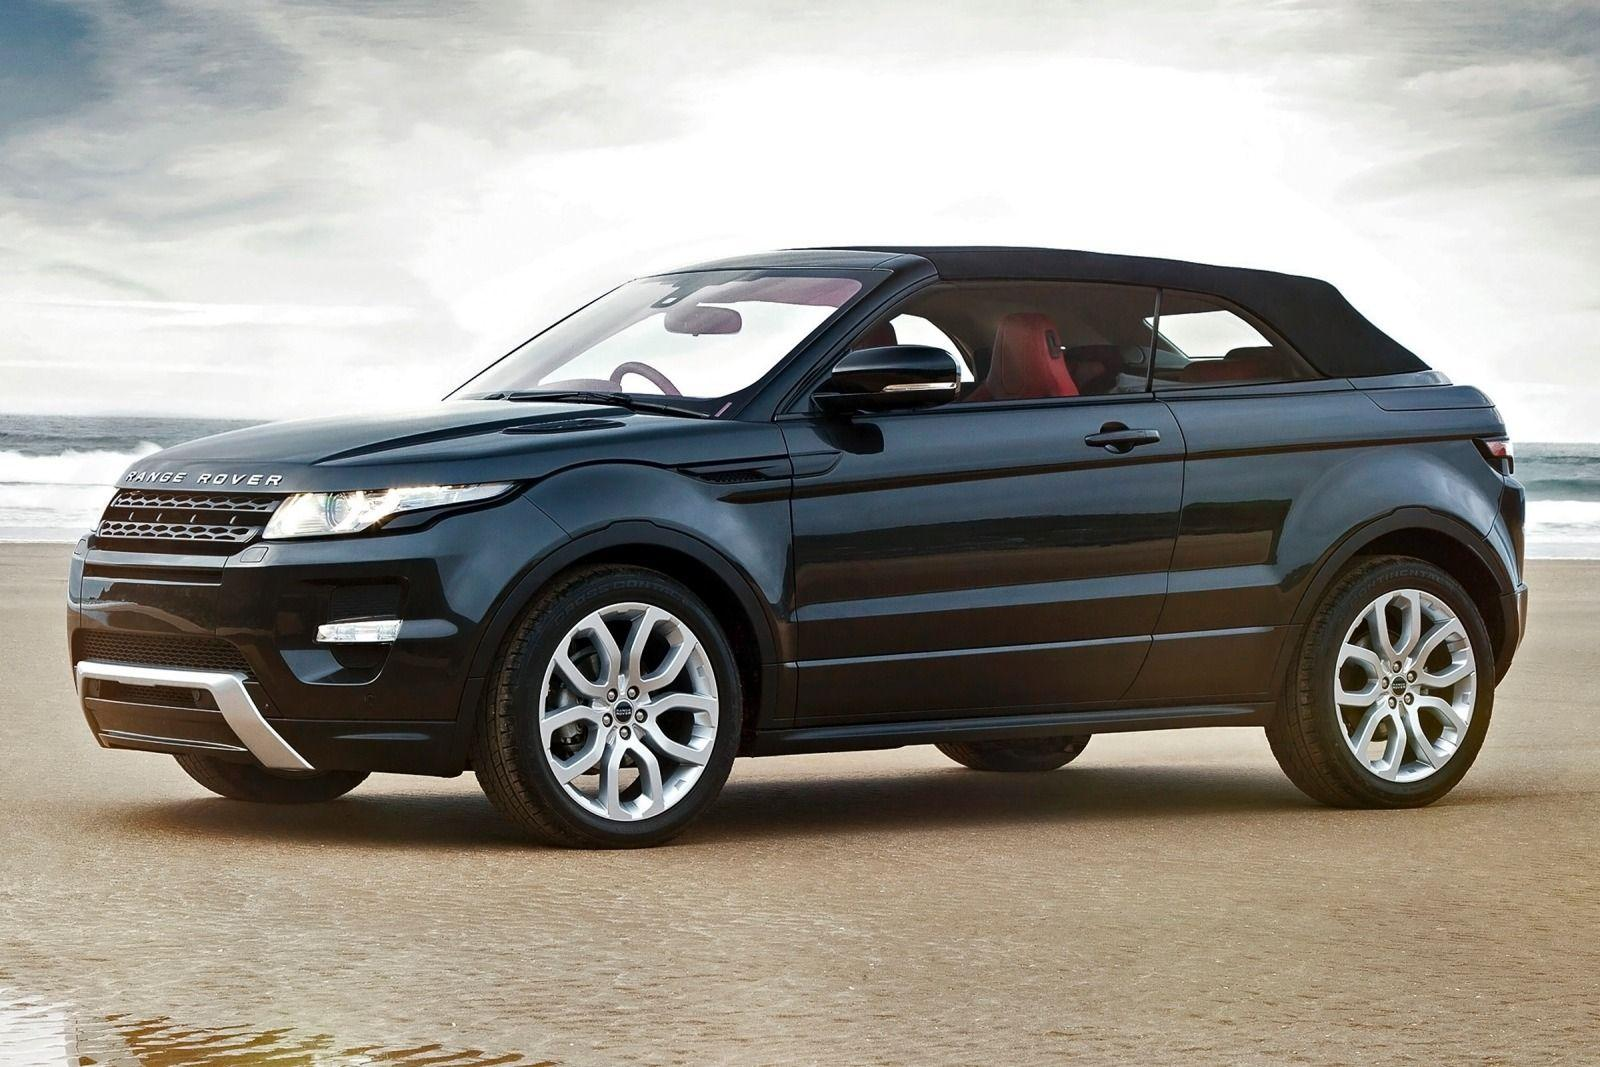 2015 Land Rover Range Rover Evoque Convertible Information And